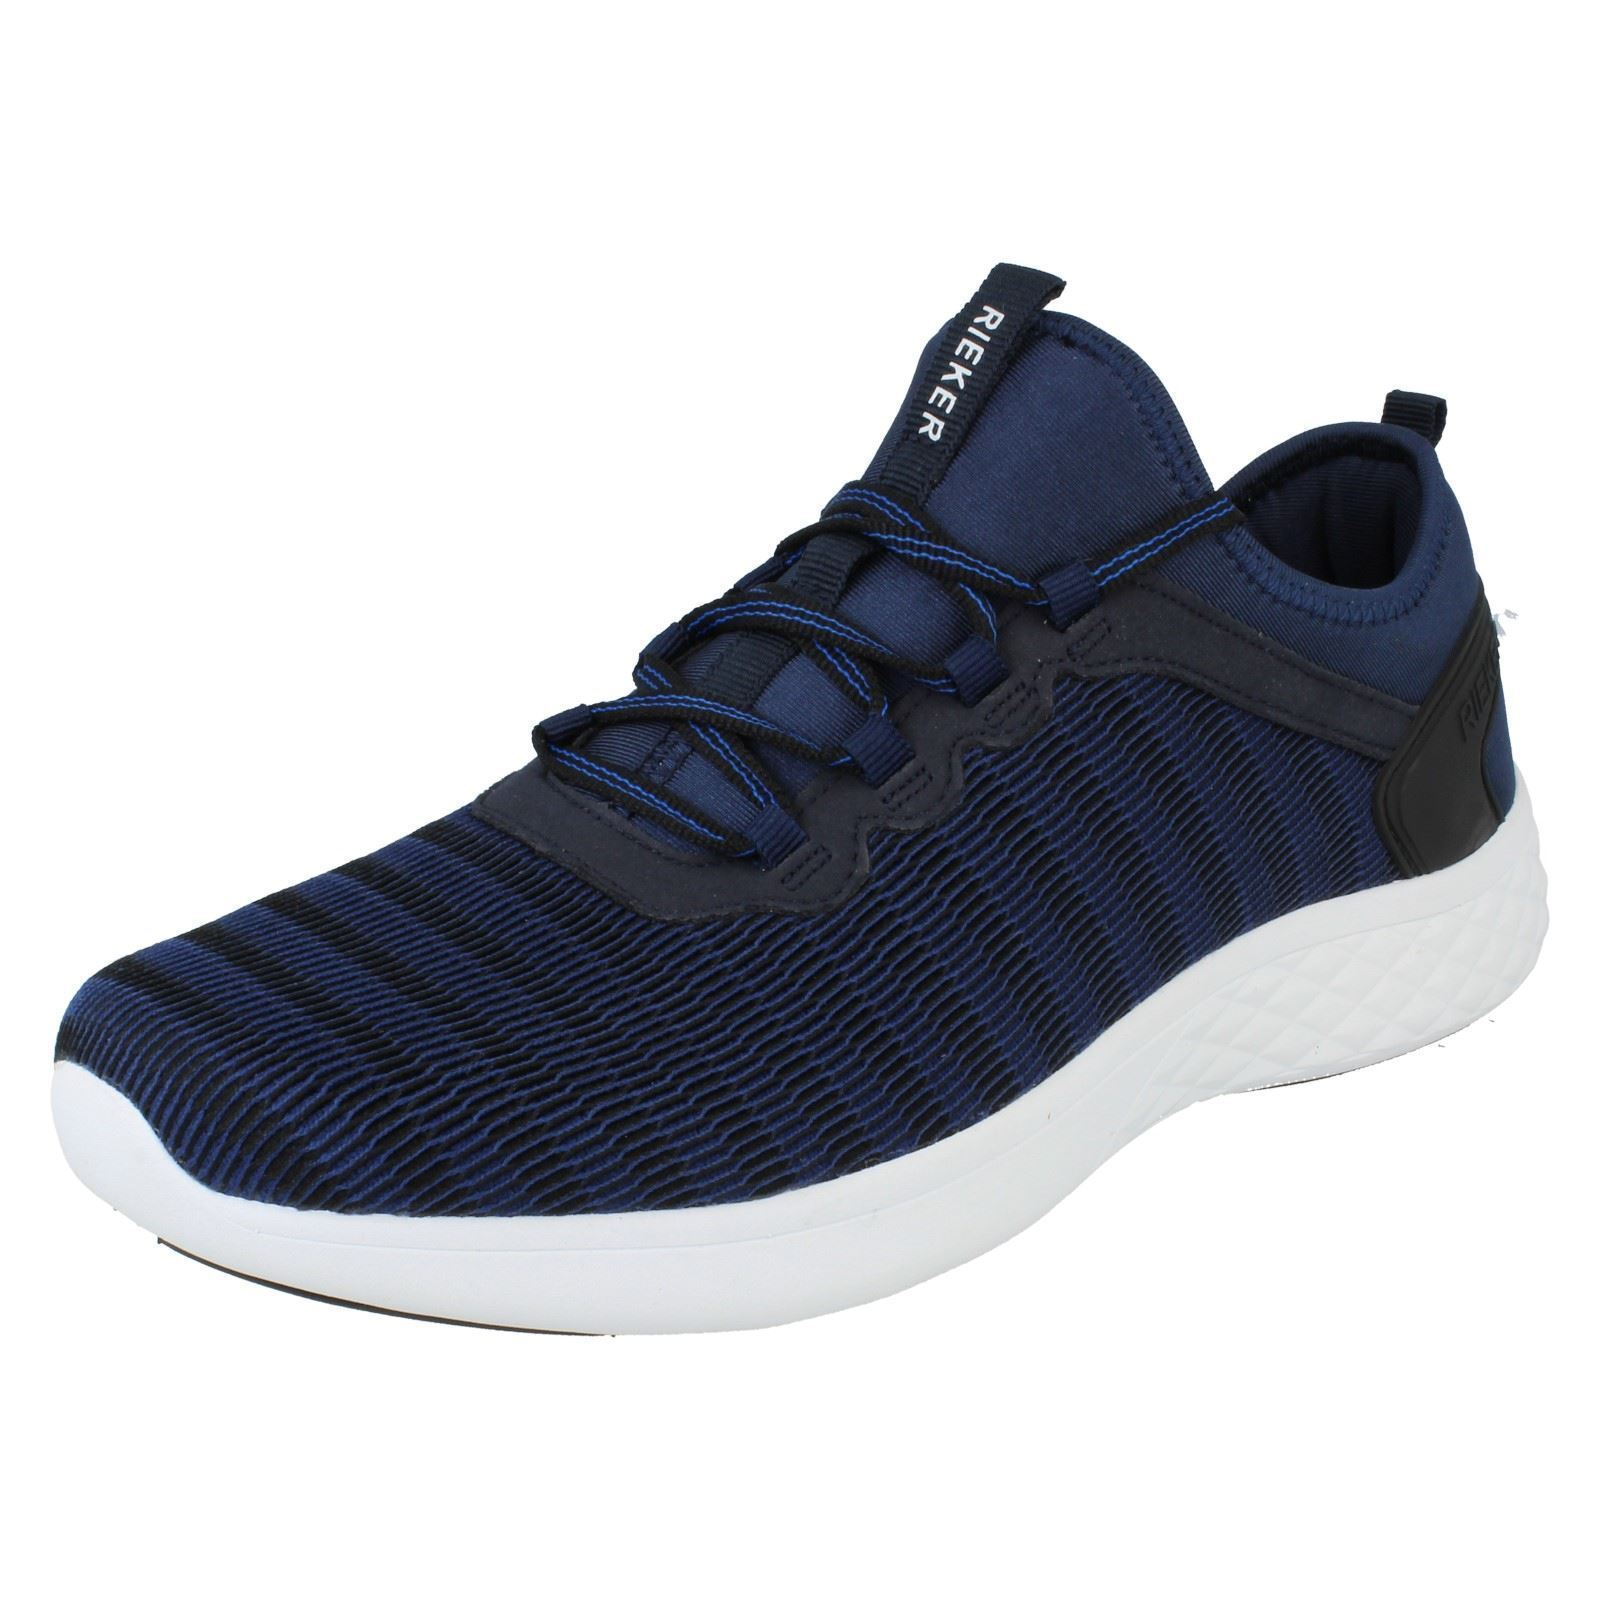 Mens Rieker B9753 Blue Casual Slip On Trainers